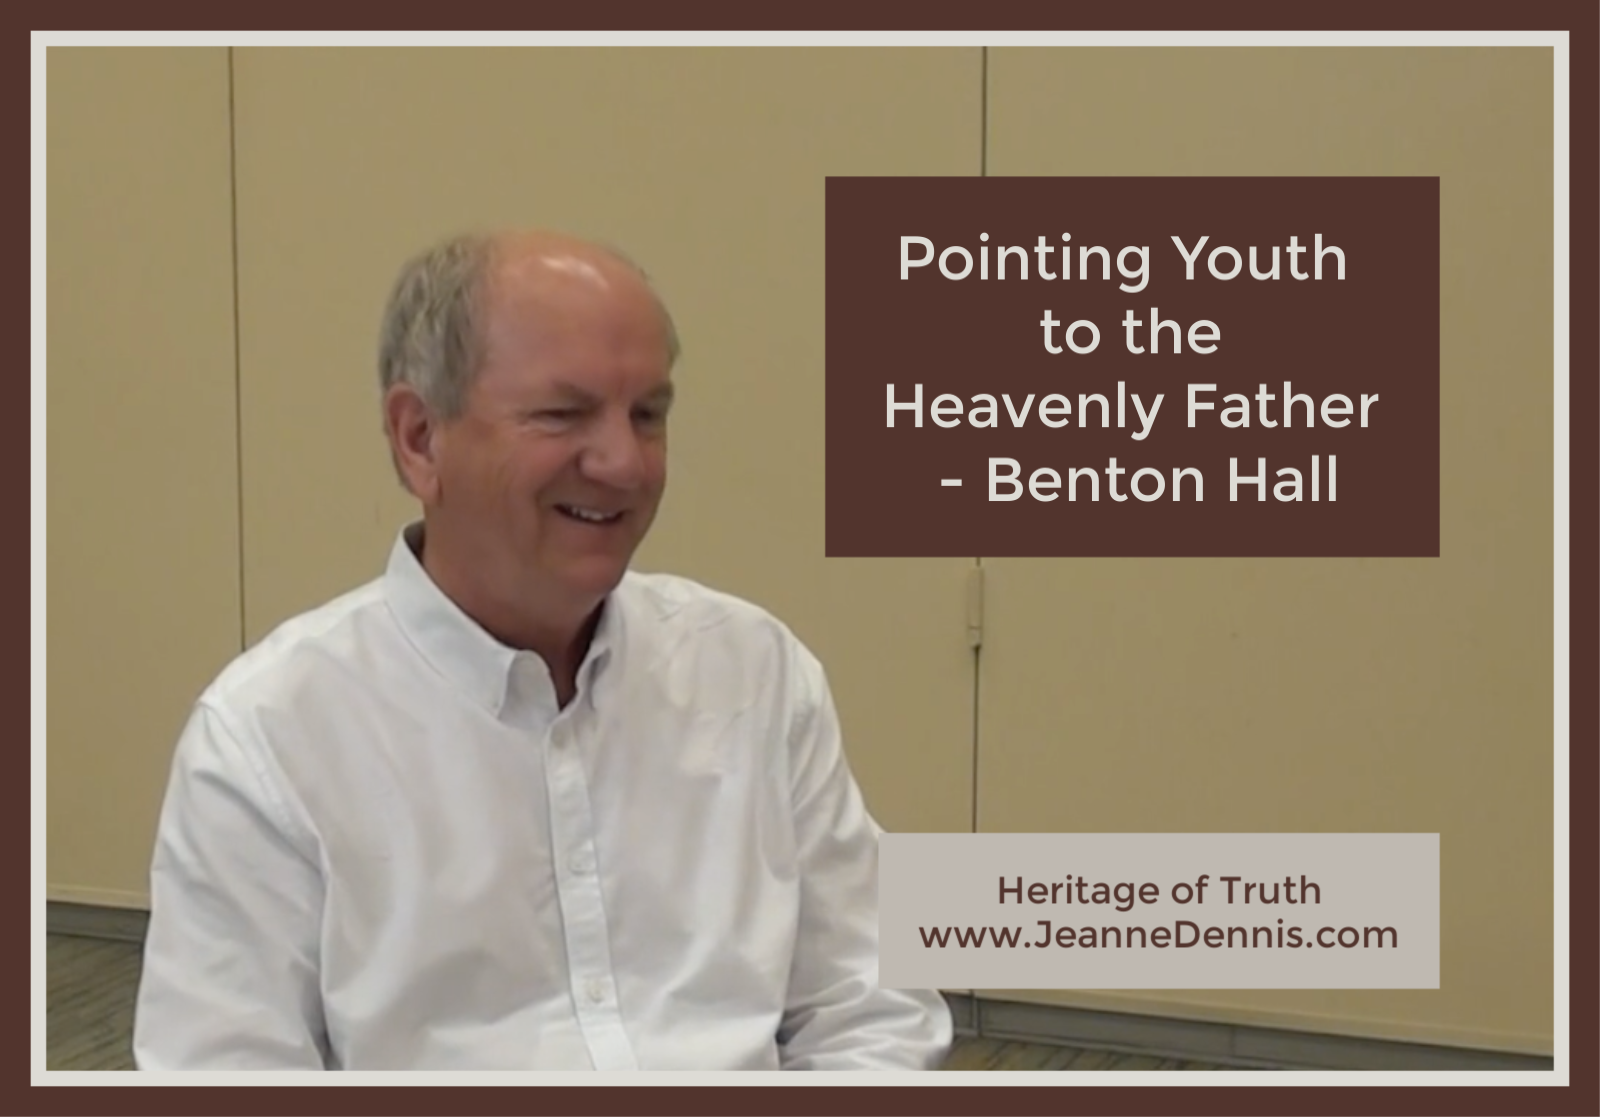 Pointing Youth to the Heavenly Father - Benton Hall